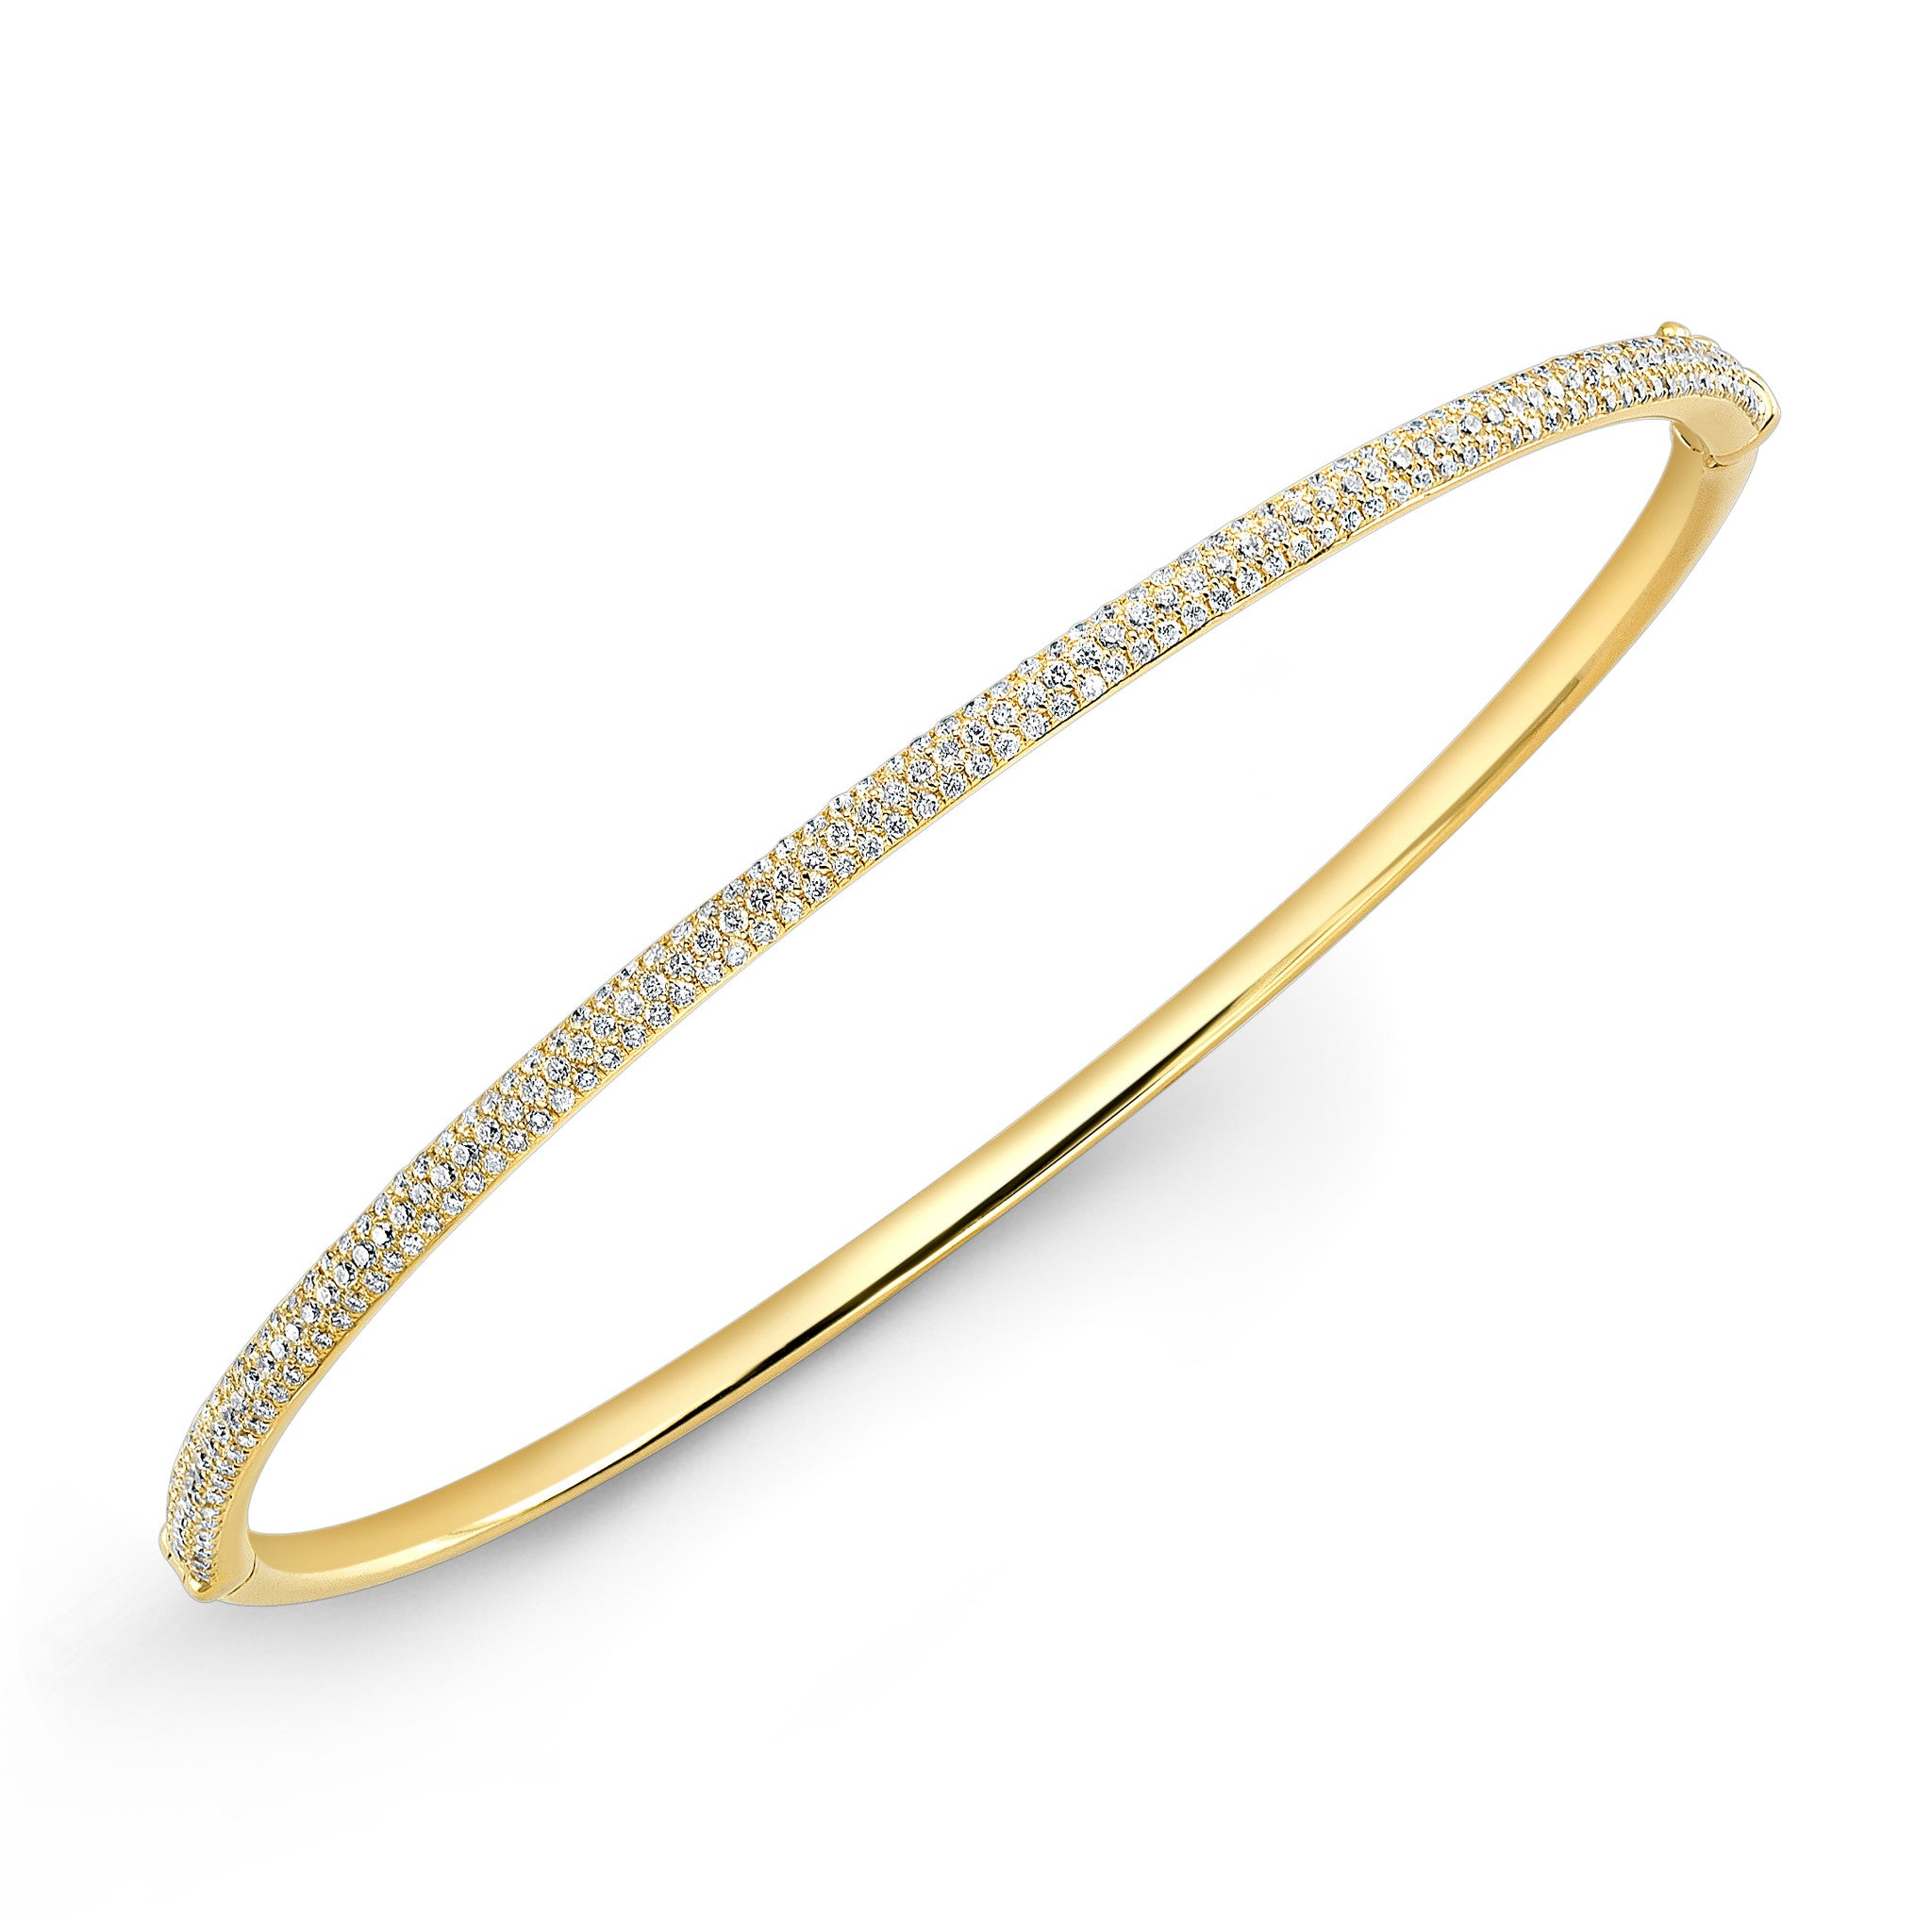 bangles cuff pave htm bracelets bangle jewelry diamond collection bracelet